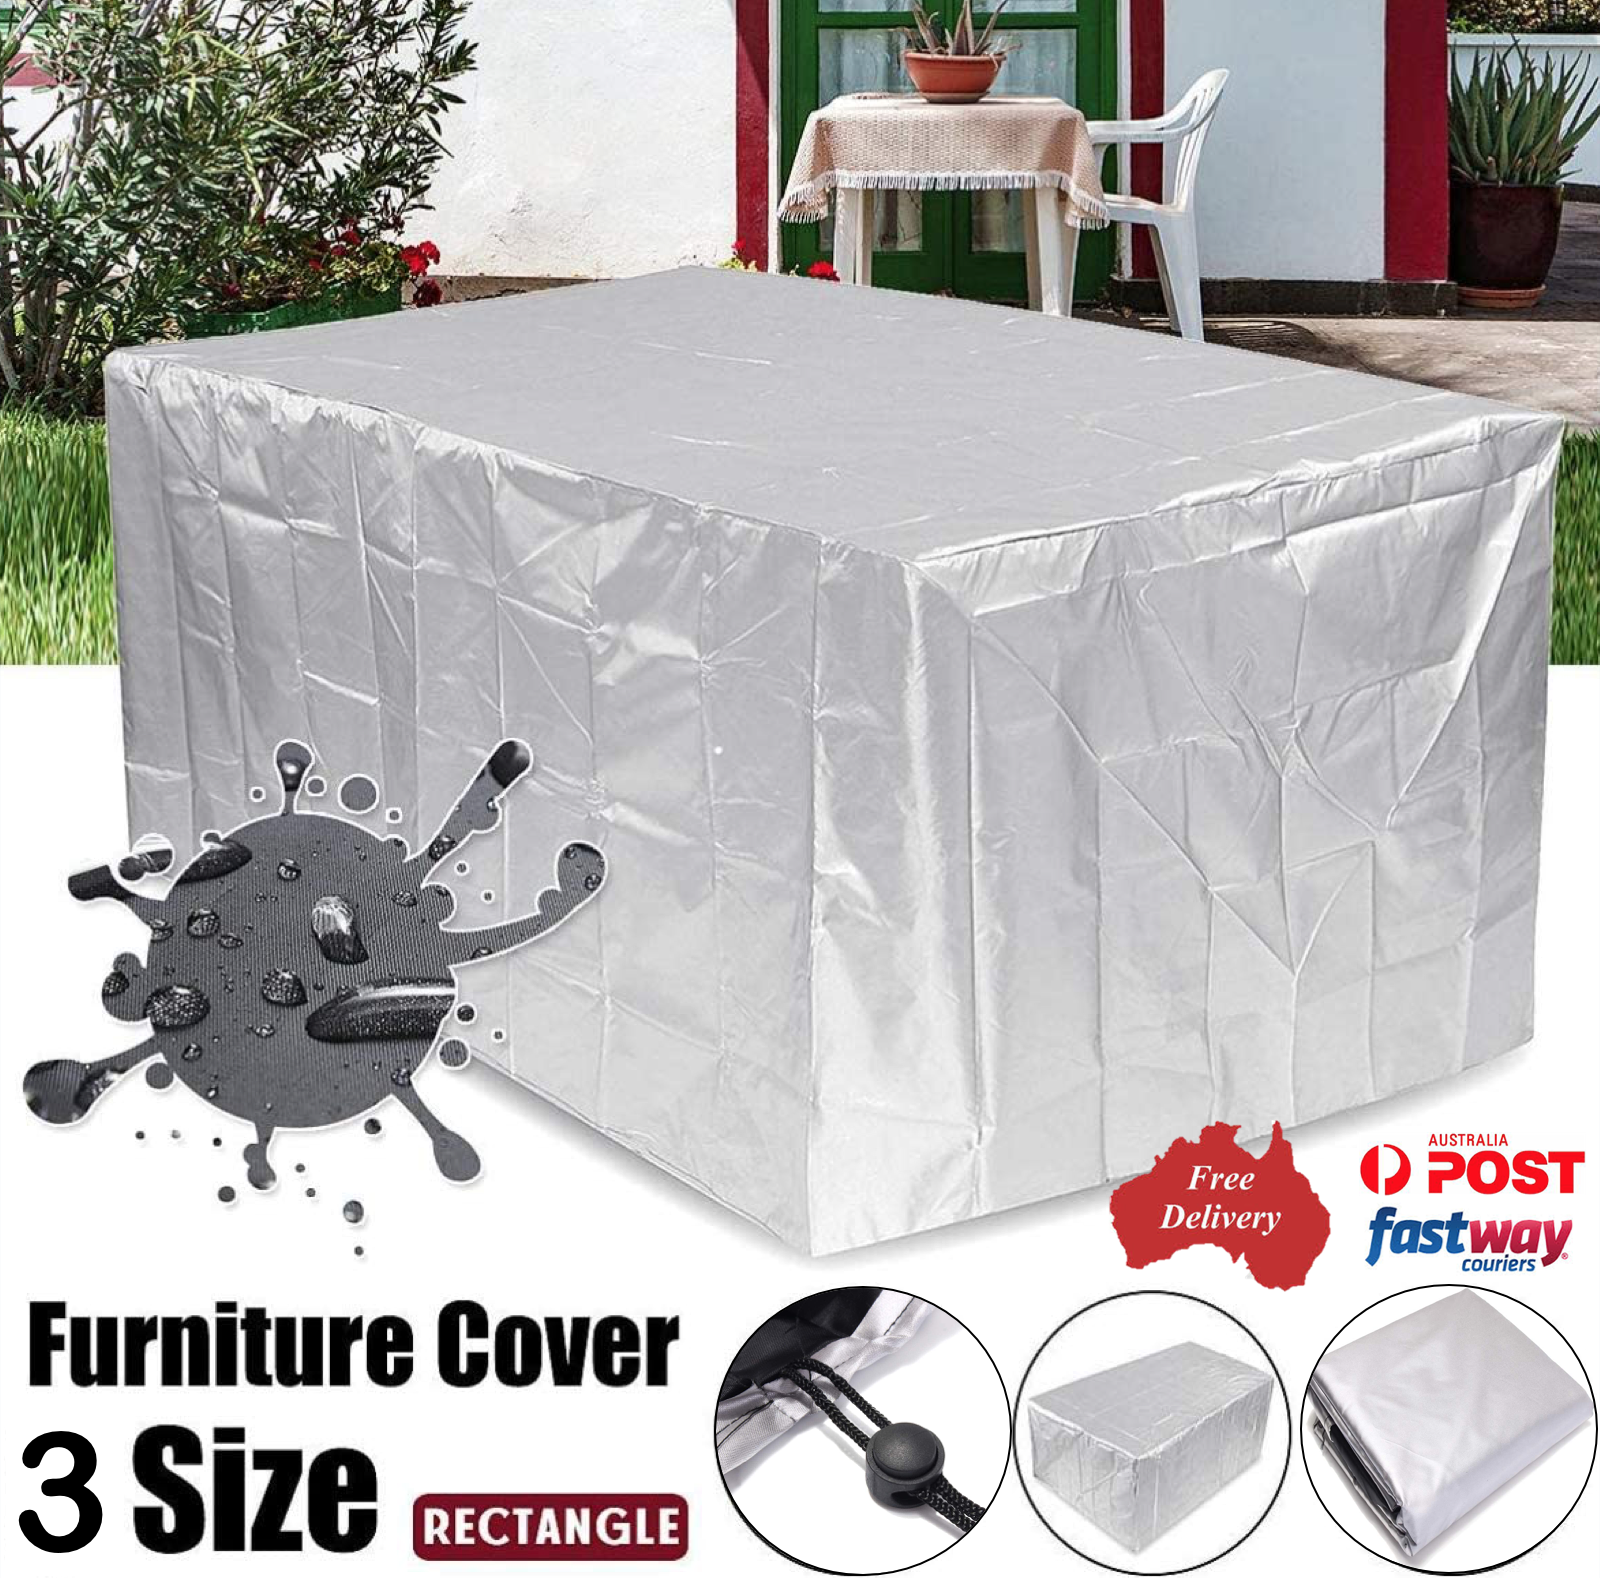 Garden Furniture - Waterproof Outdoor Furniture Cover Yard UV Garden Table Chair Shelter Protector